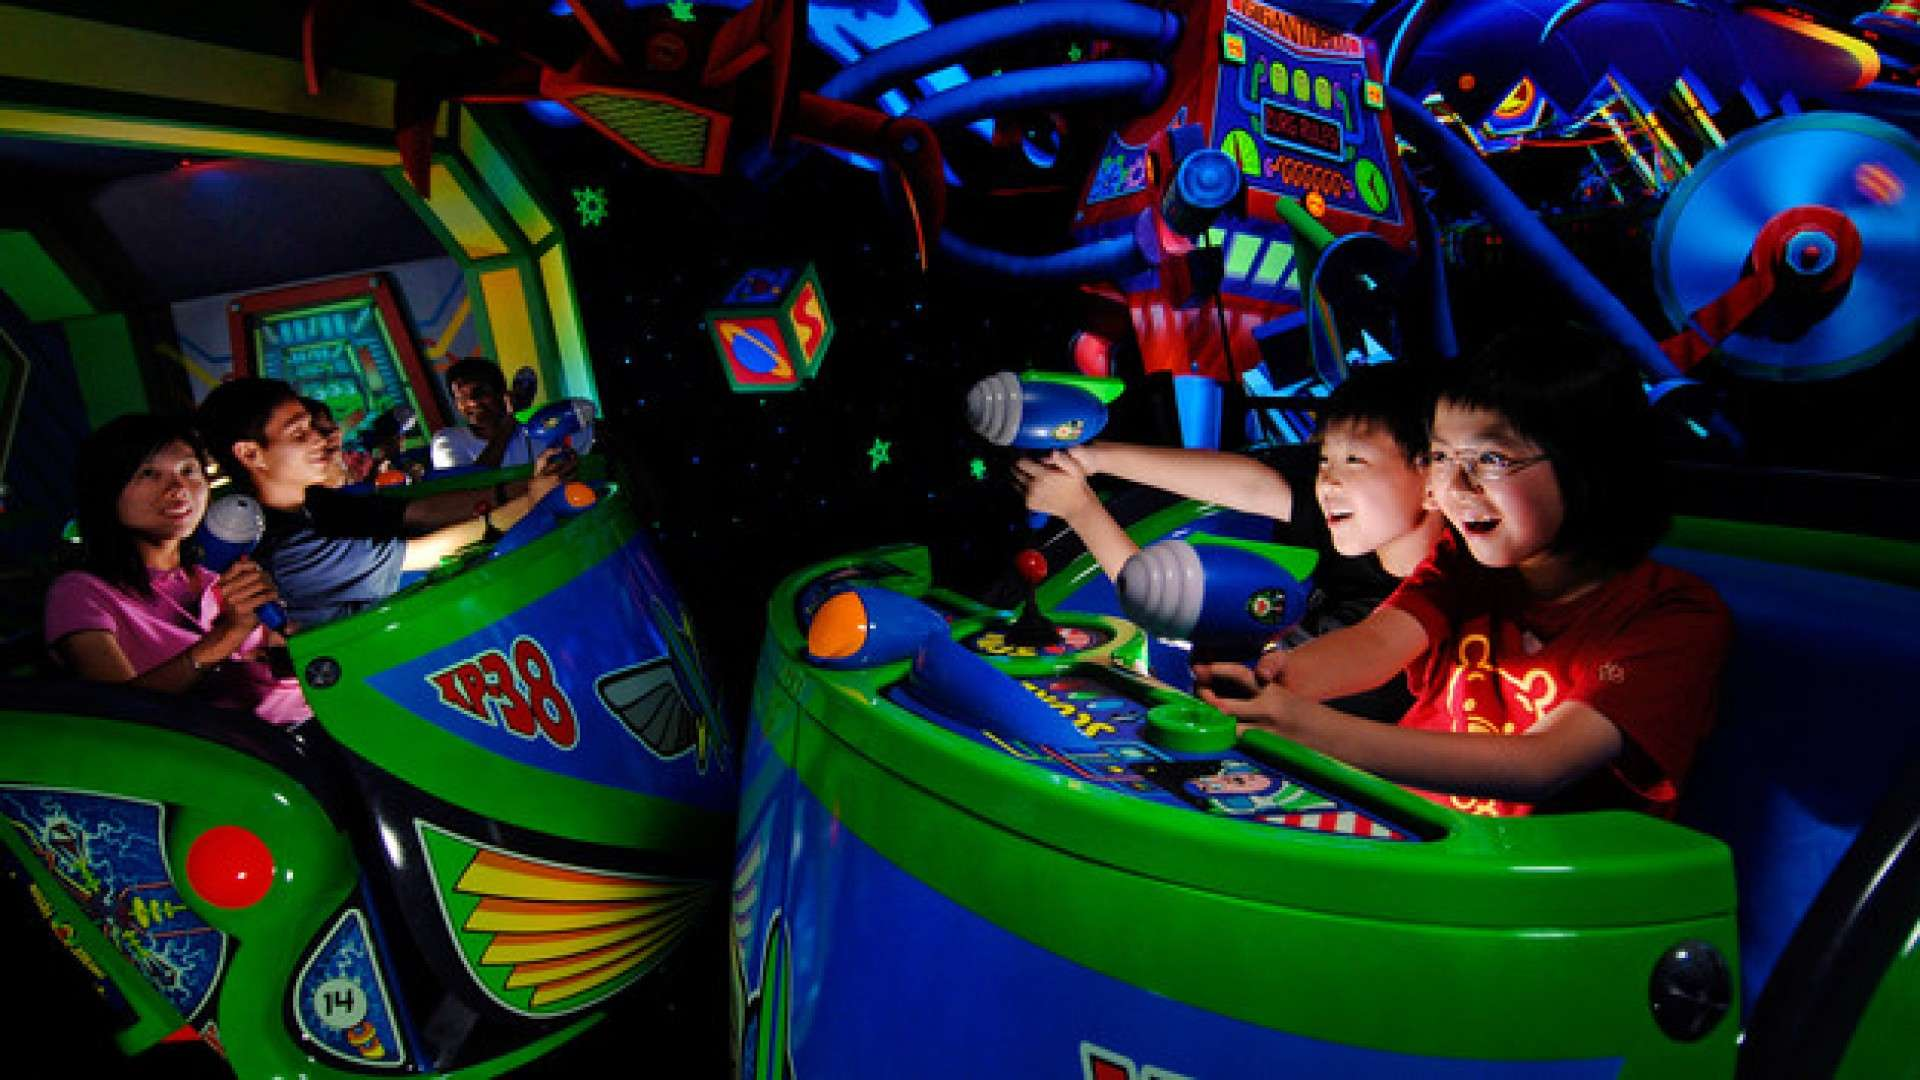 Disneyland Astro Blasters-  Online Game, Score and PostCard